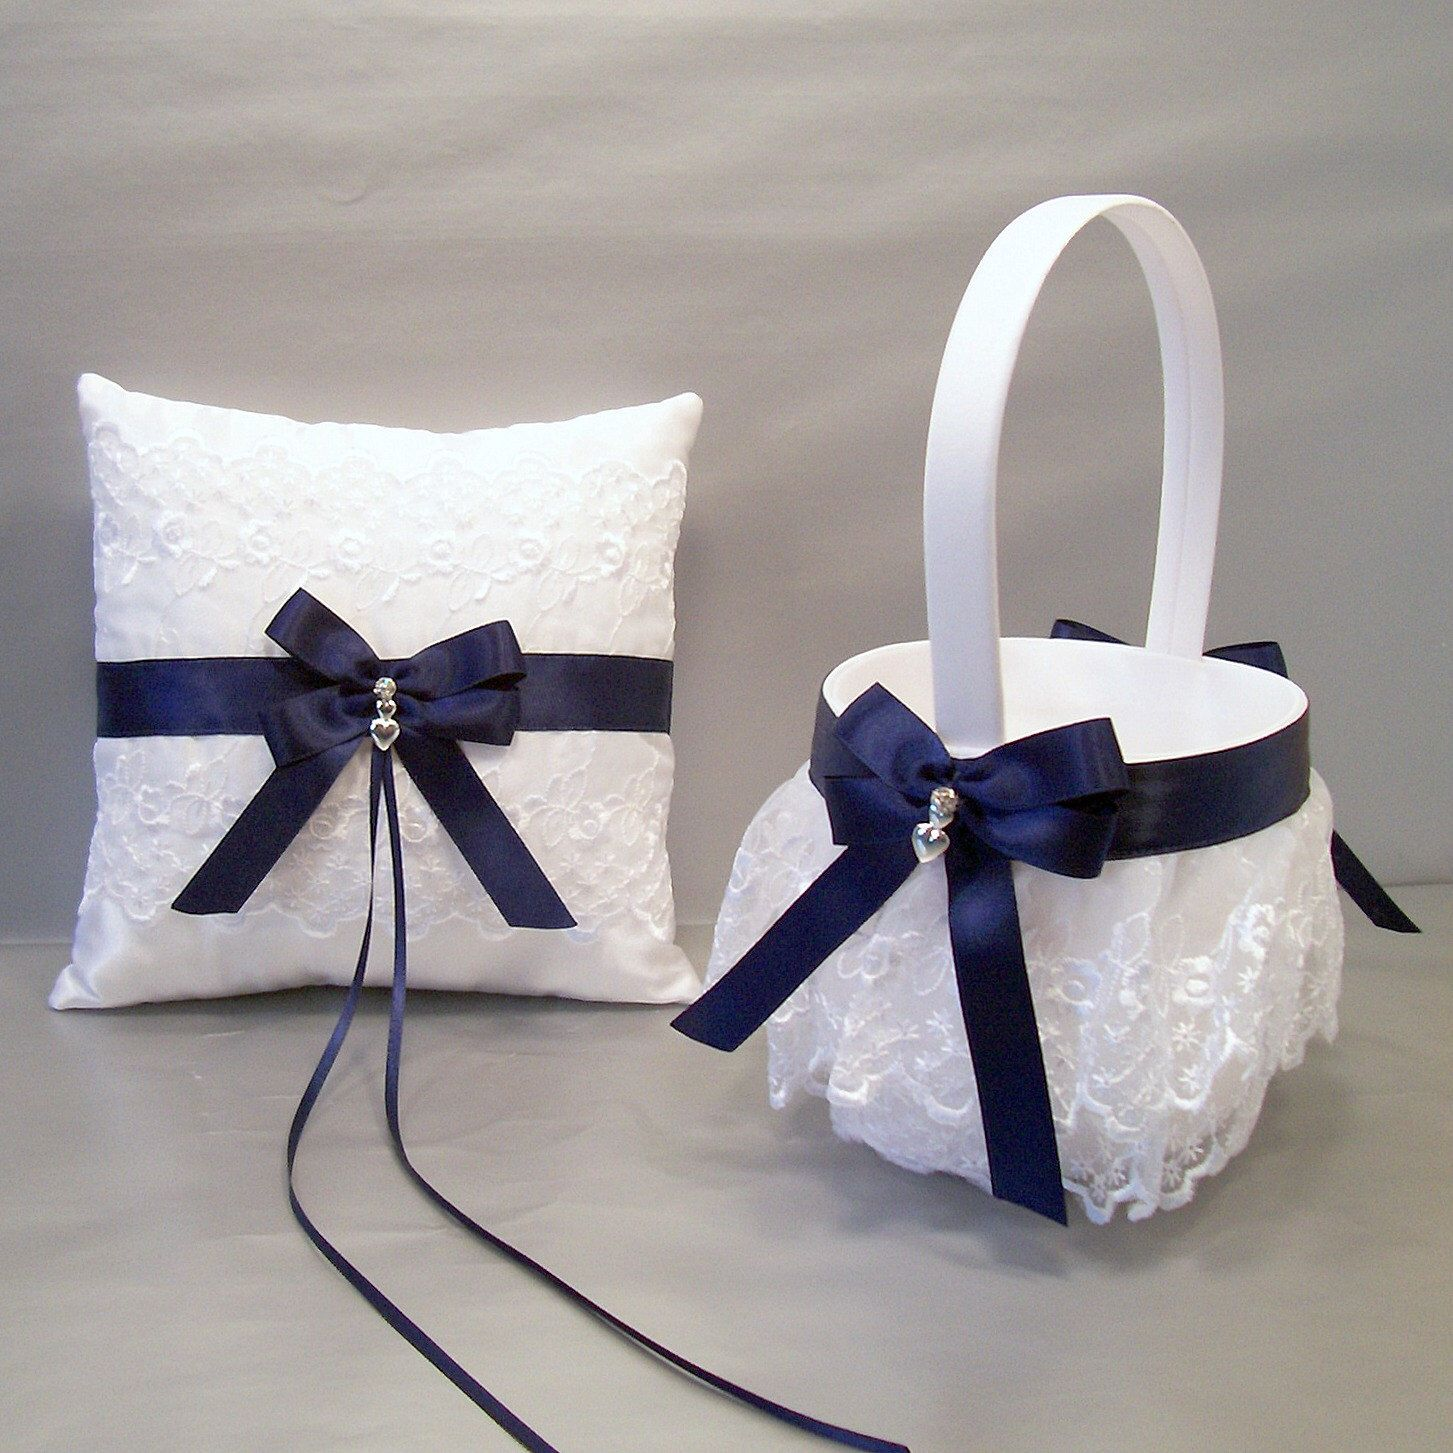 Navy blue wedding bridal flower girl basket and ring bearer pillow navy blue wedding bridal flower girl basket ring bearer pillow set on white or ivory allison line may also be purchased individually izmirmasajfo Images